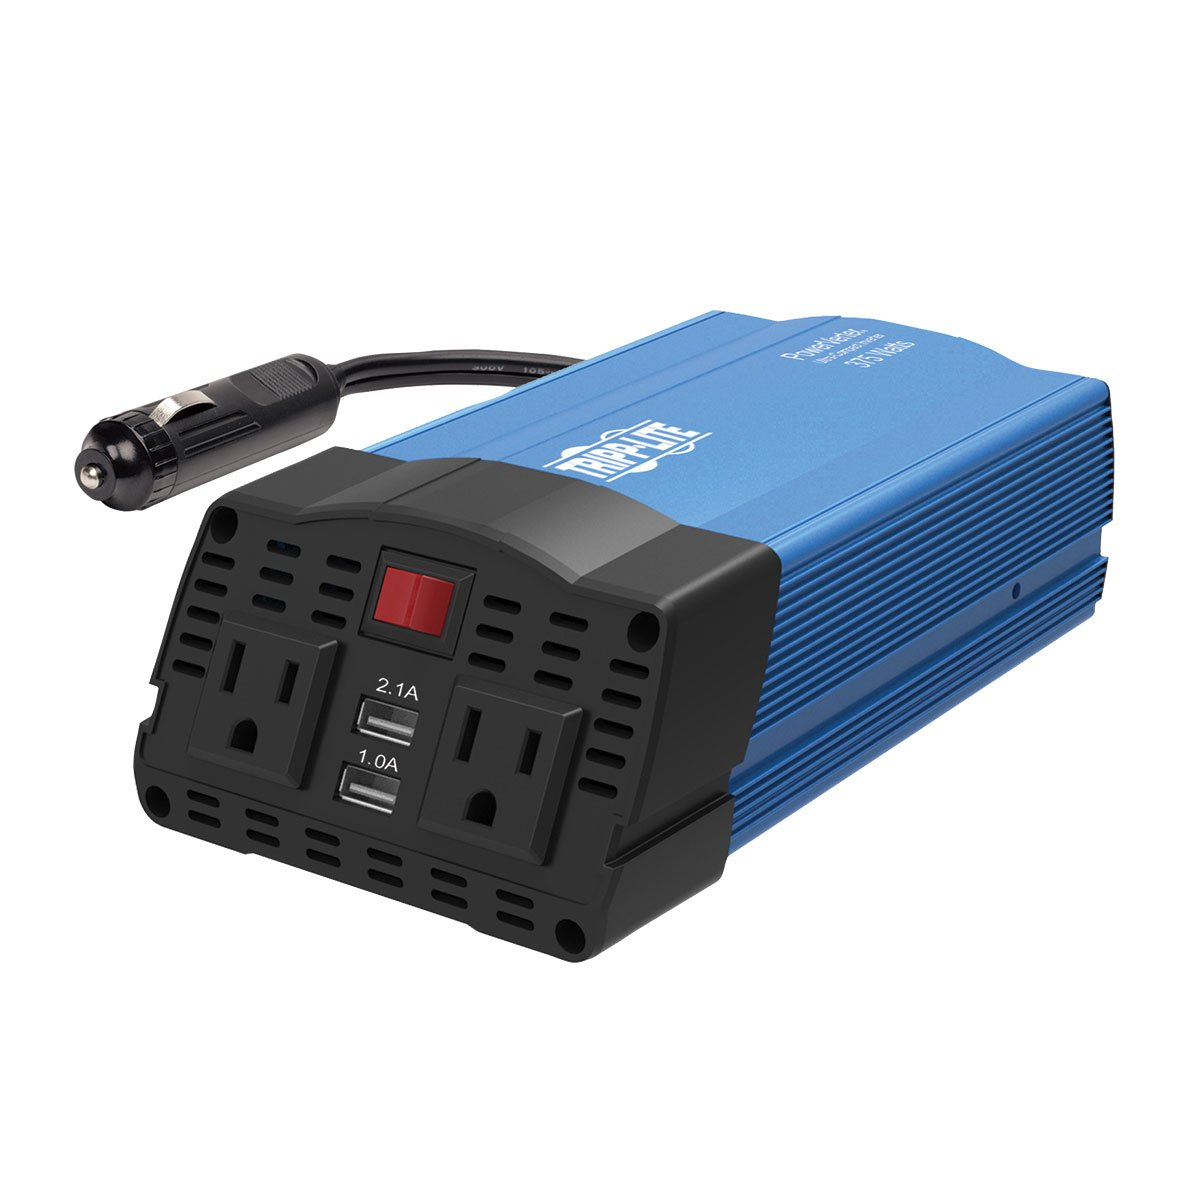 Tripp Lite 375W Compact Portable Car Power Inverter 2 Outlet 12V DC to 120V AC w/ 2-Port USB Charging Ports (PV375USB)